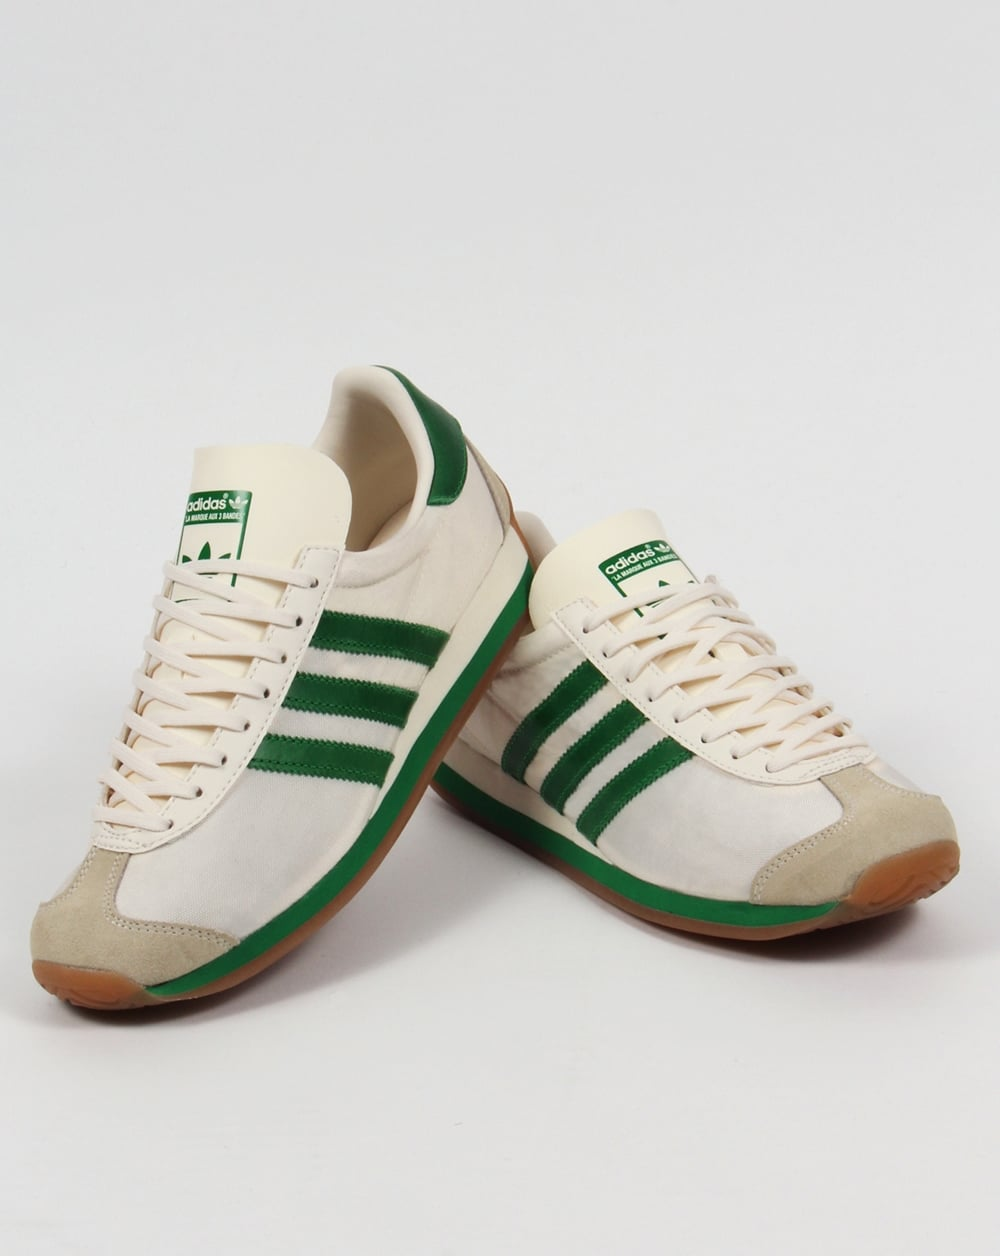 Adidas Country OG Trainers Chalk White/Green. Code: 00040191